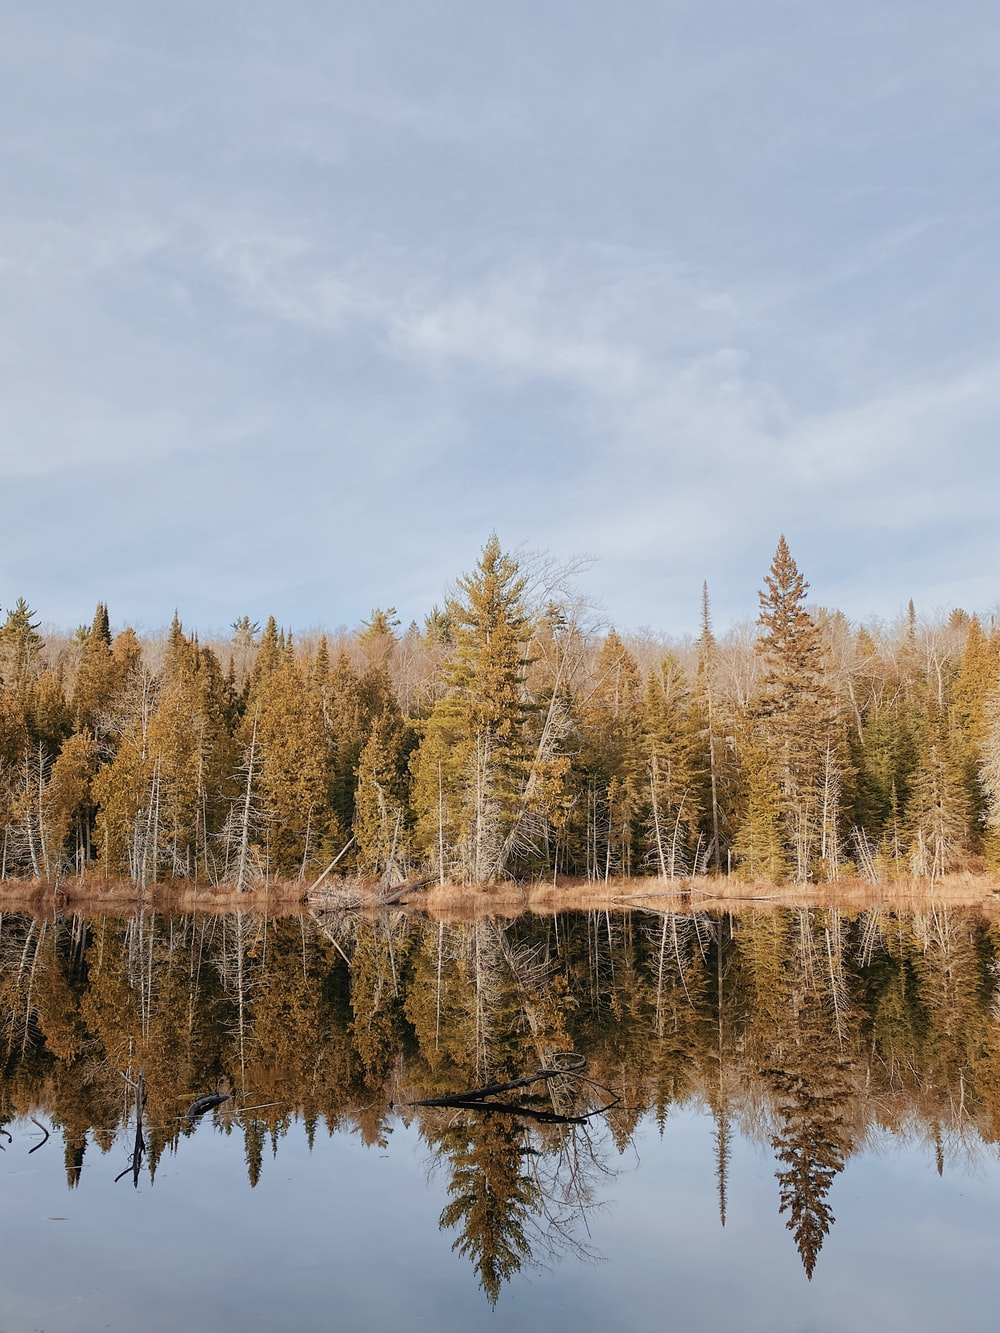 green and brown trees beside body of water under white clouds and blue sky during daytime